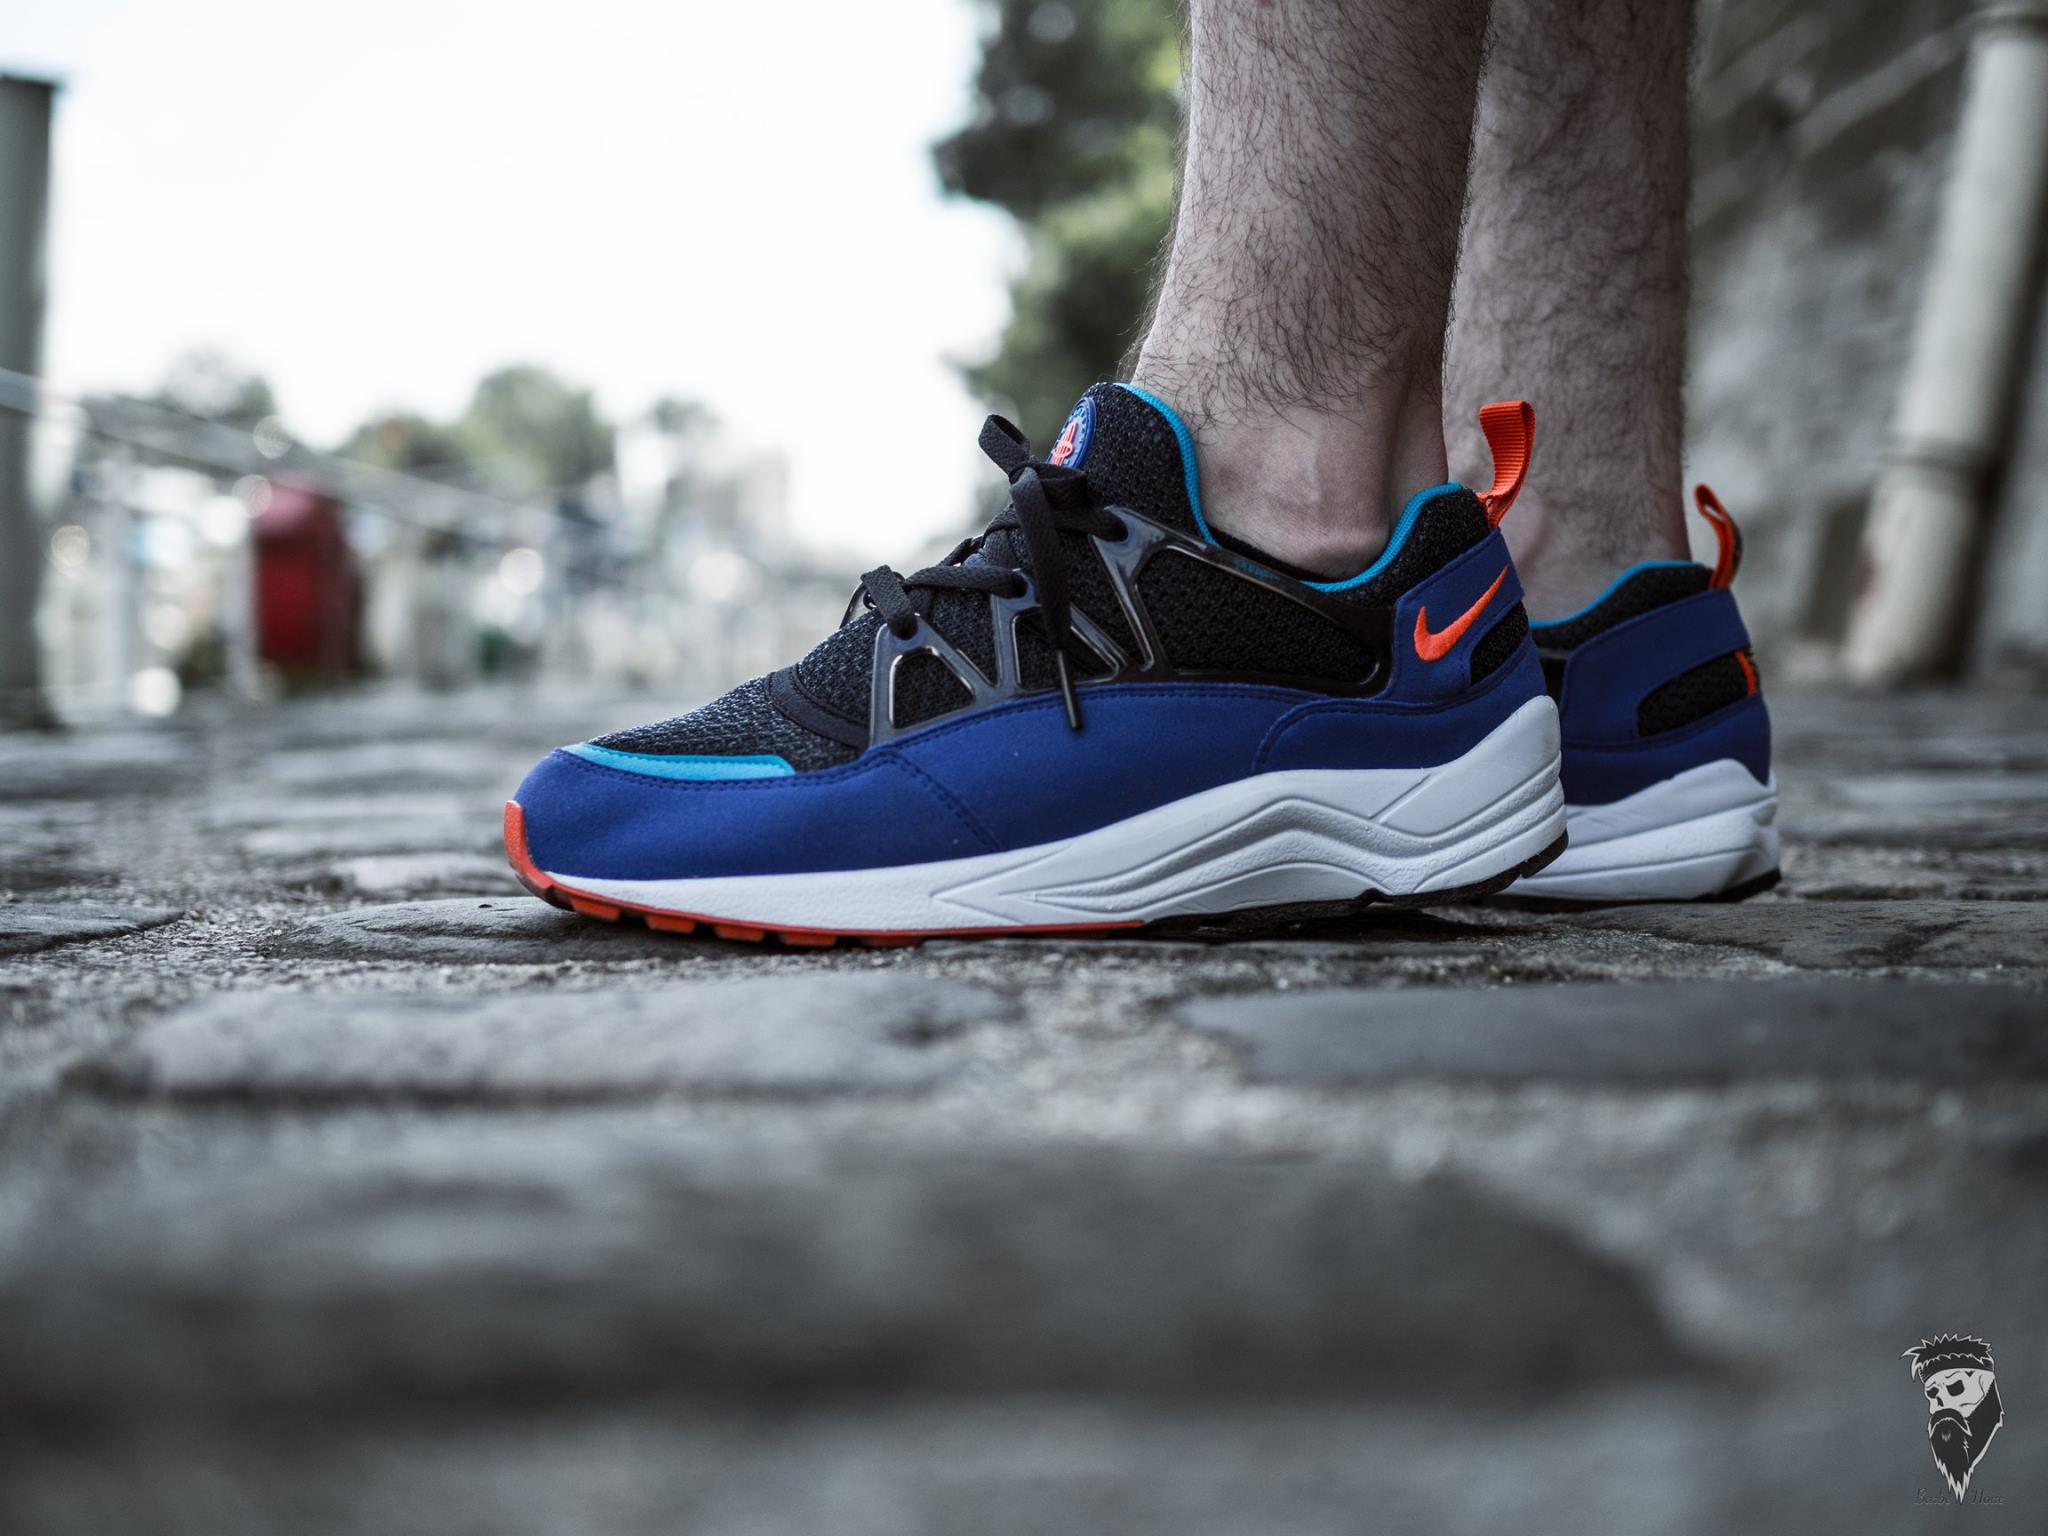 Thomas Swoosh - Nike Air Huarache Light Ultramarine